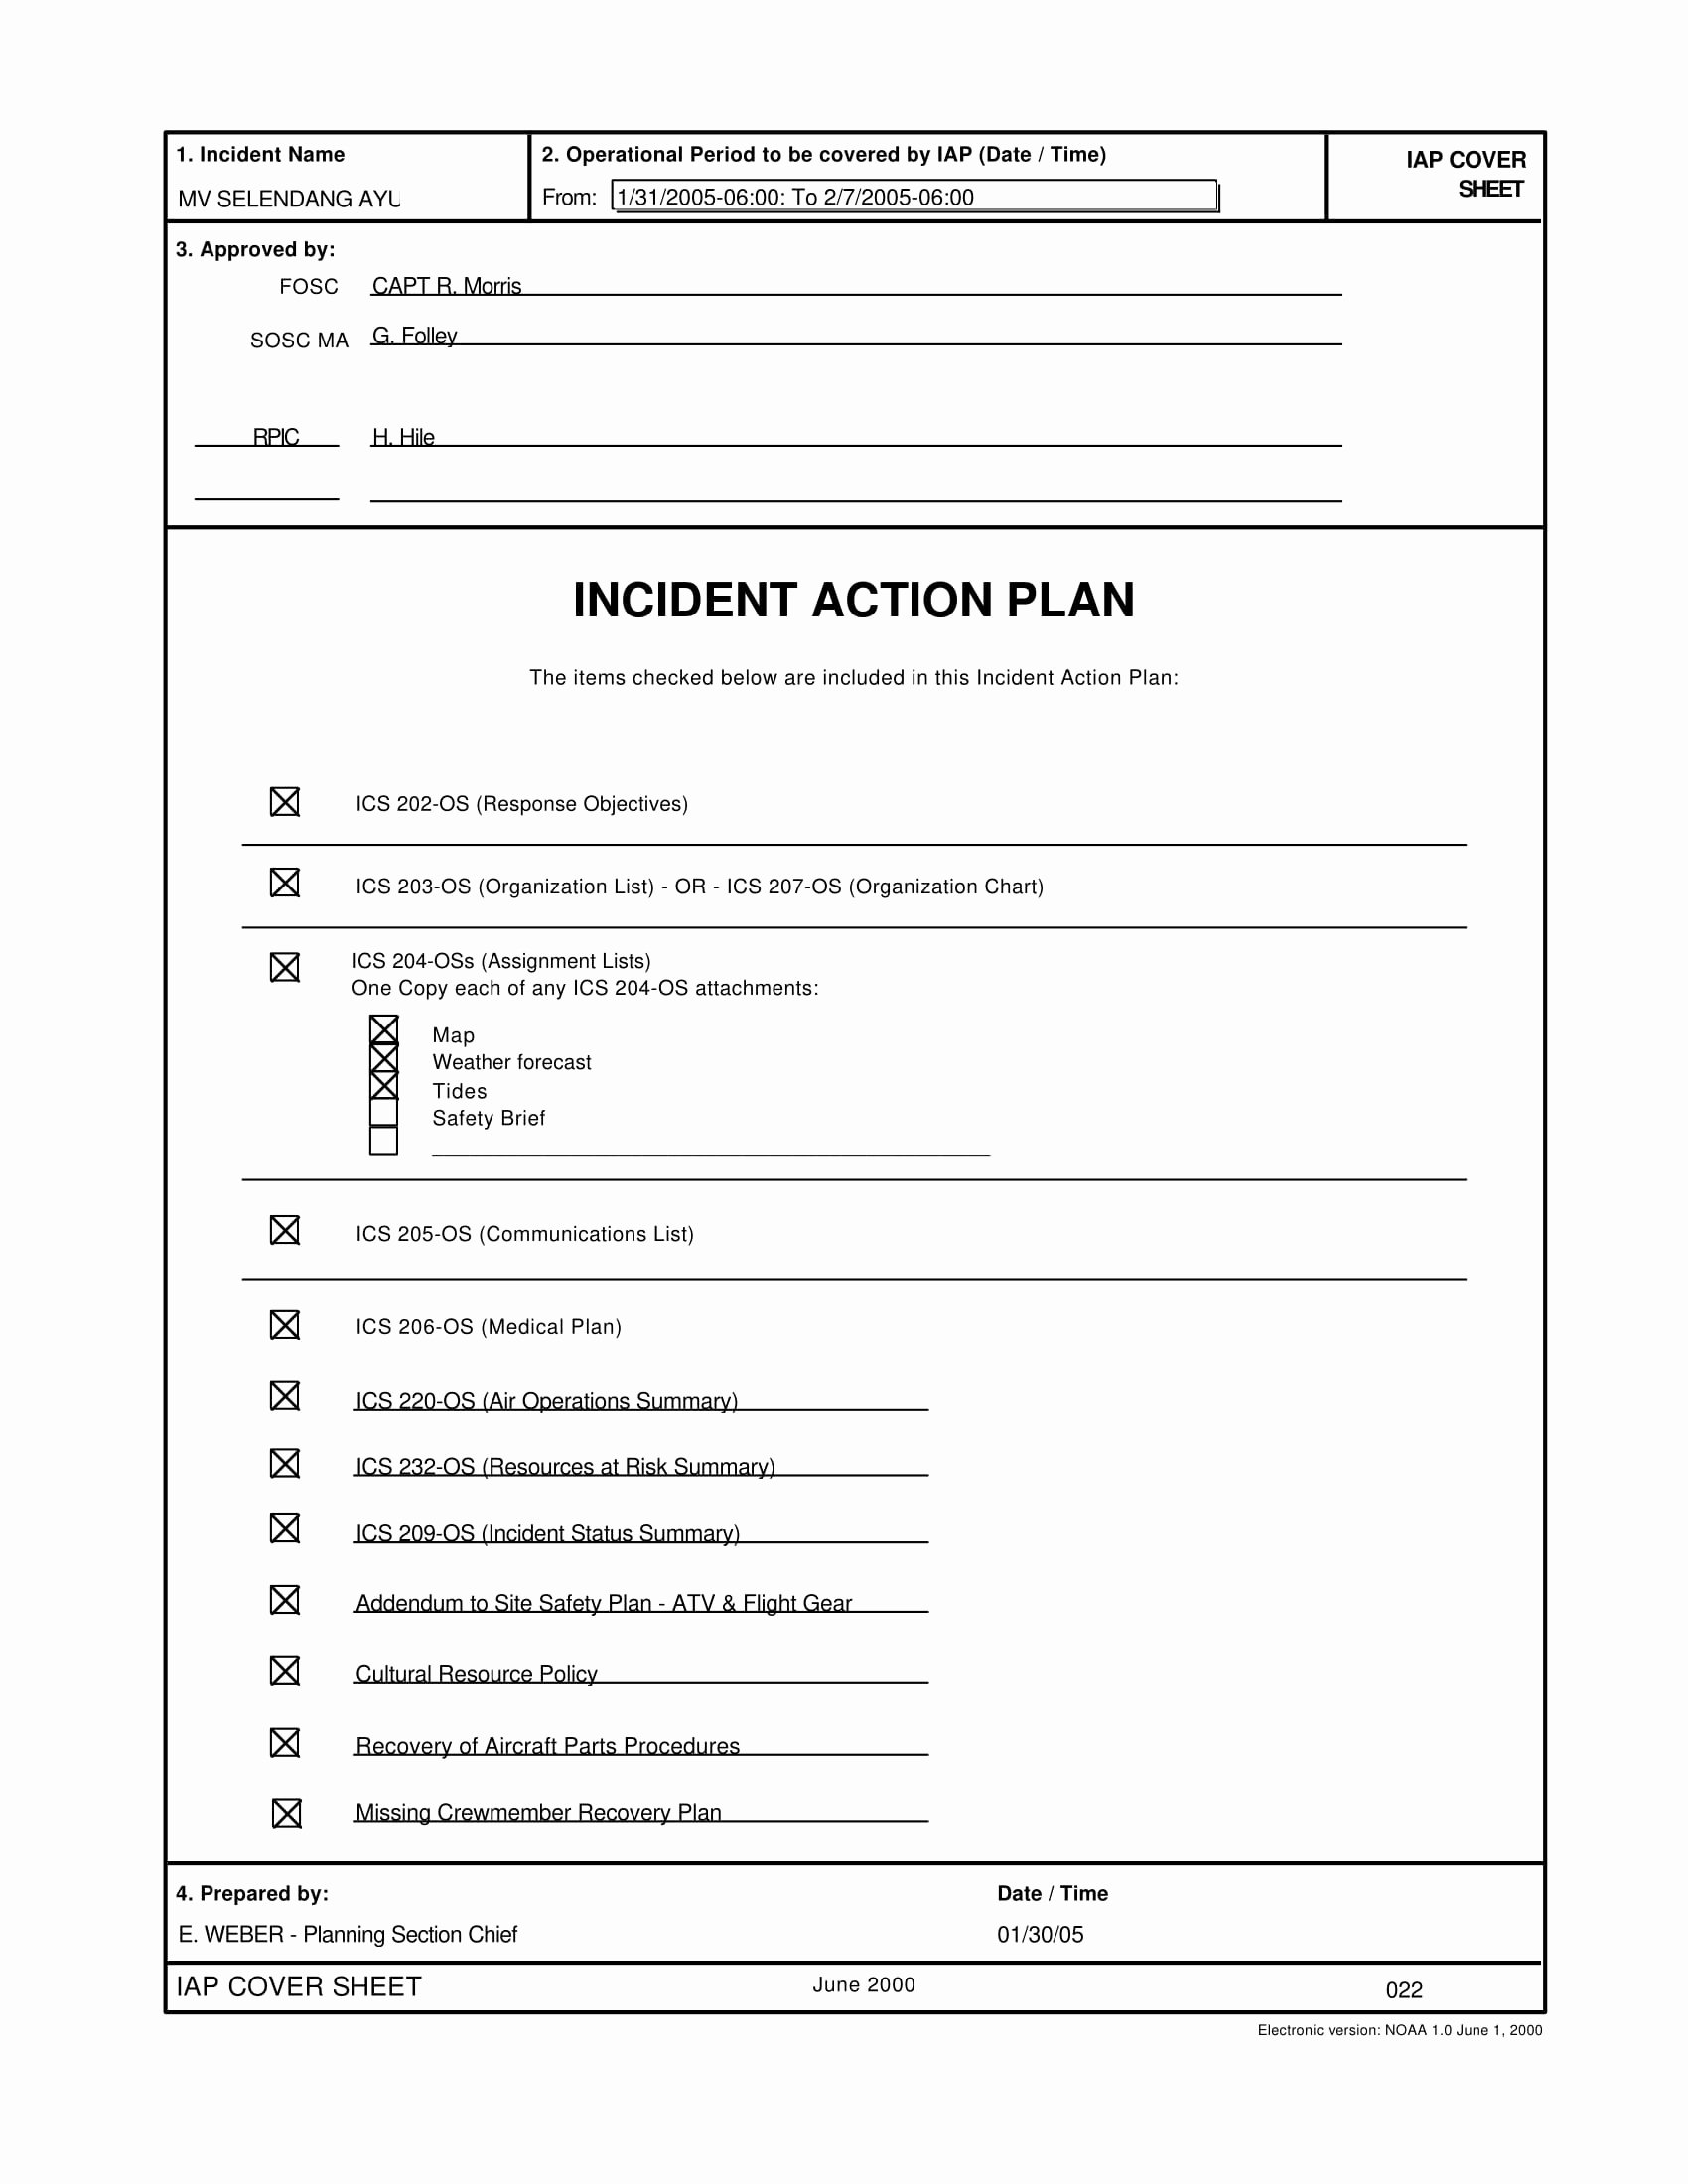 Incident Action Plan Template Inspirational 10 Incident Action Plan Templates Pdf Word